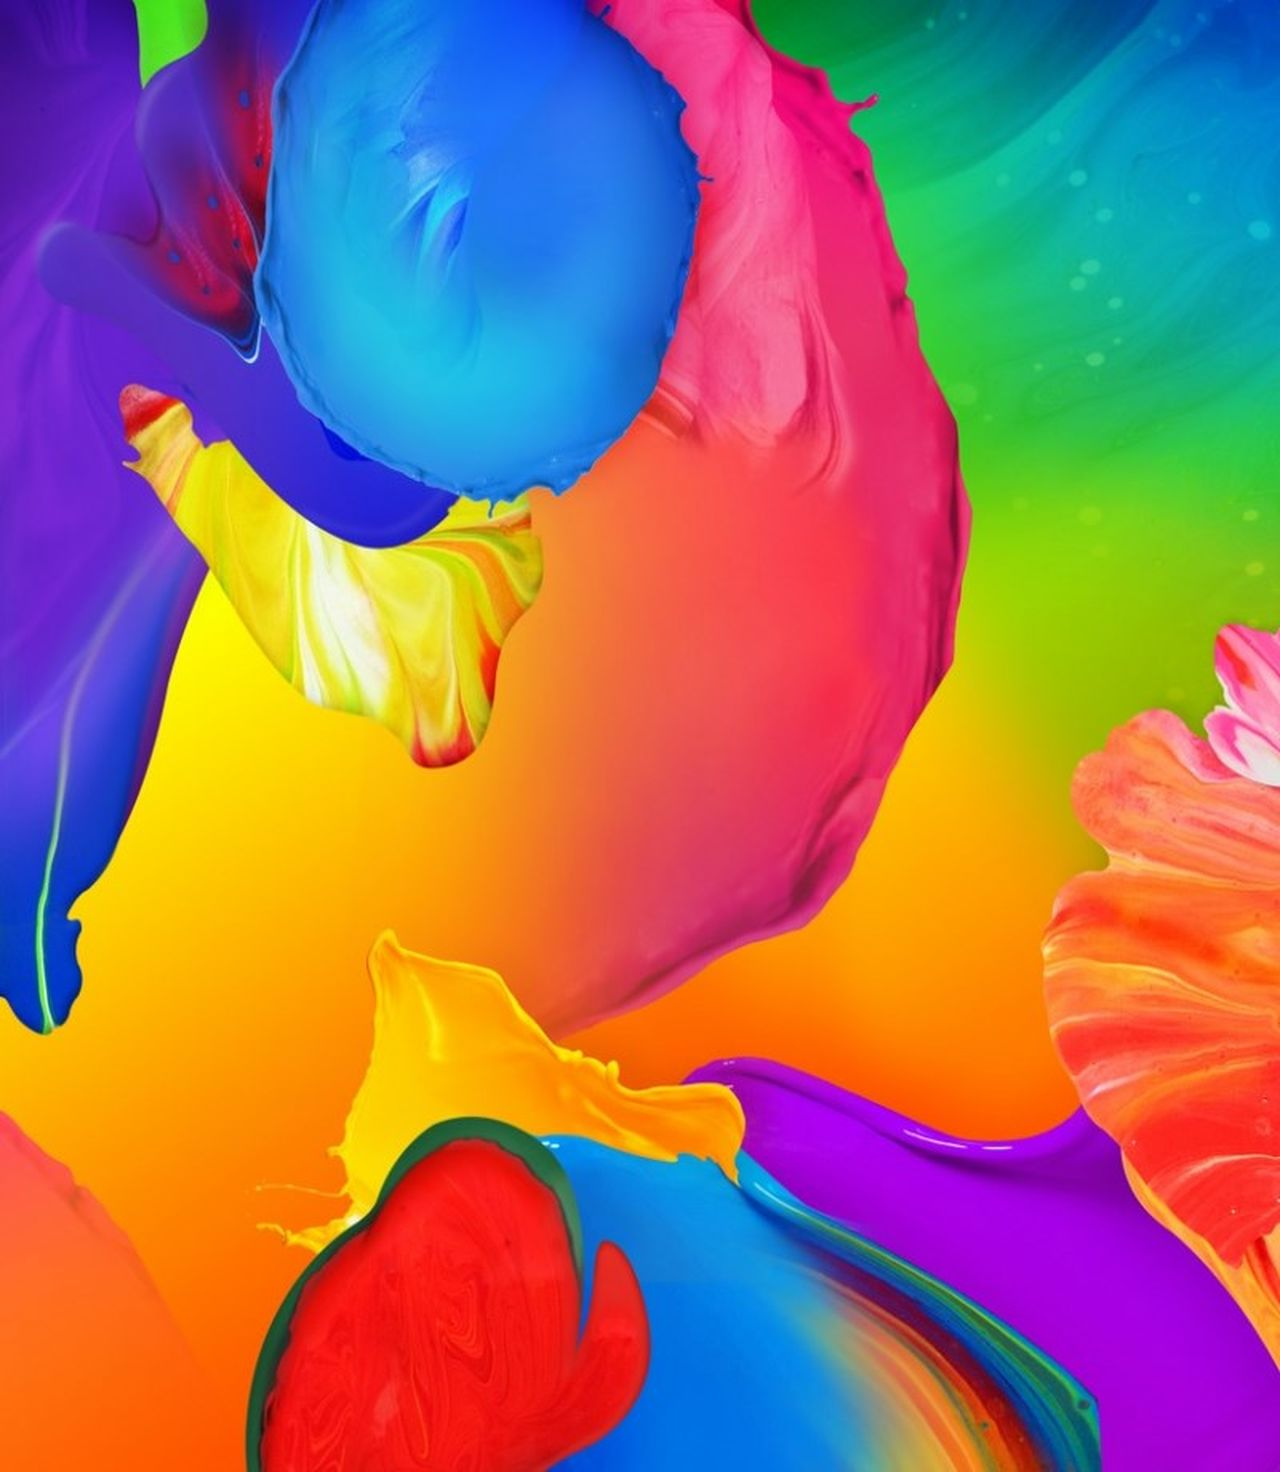 L'are Backgrounds Multi Colored No People Abstract Abstract Backgrounds Close-up Day First Eyeem Photo